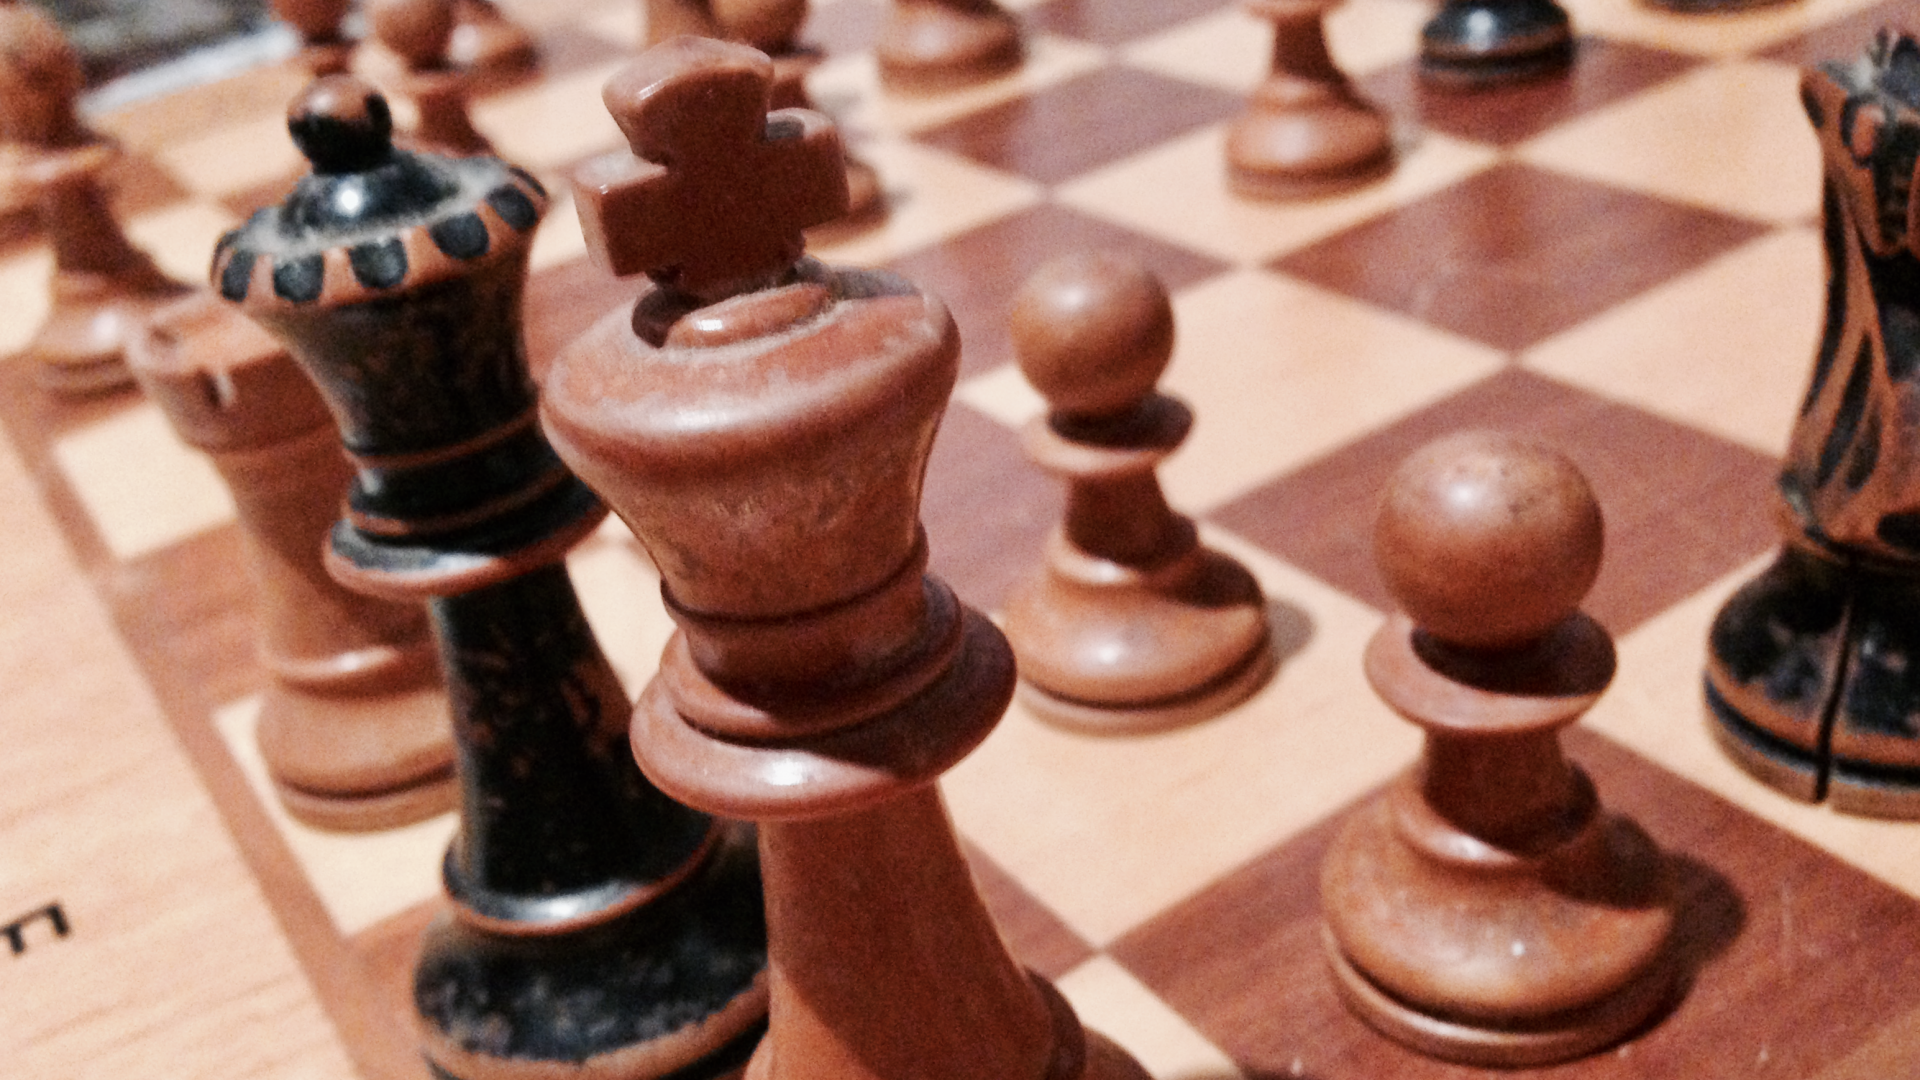 engines and databases for chess training - It's Hermann